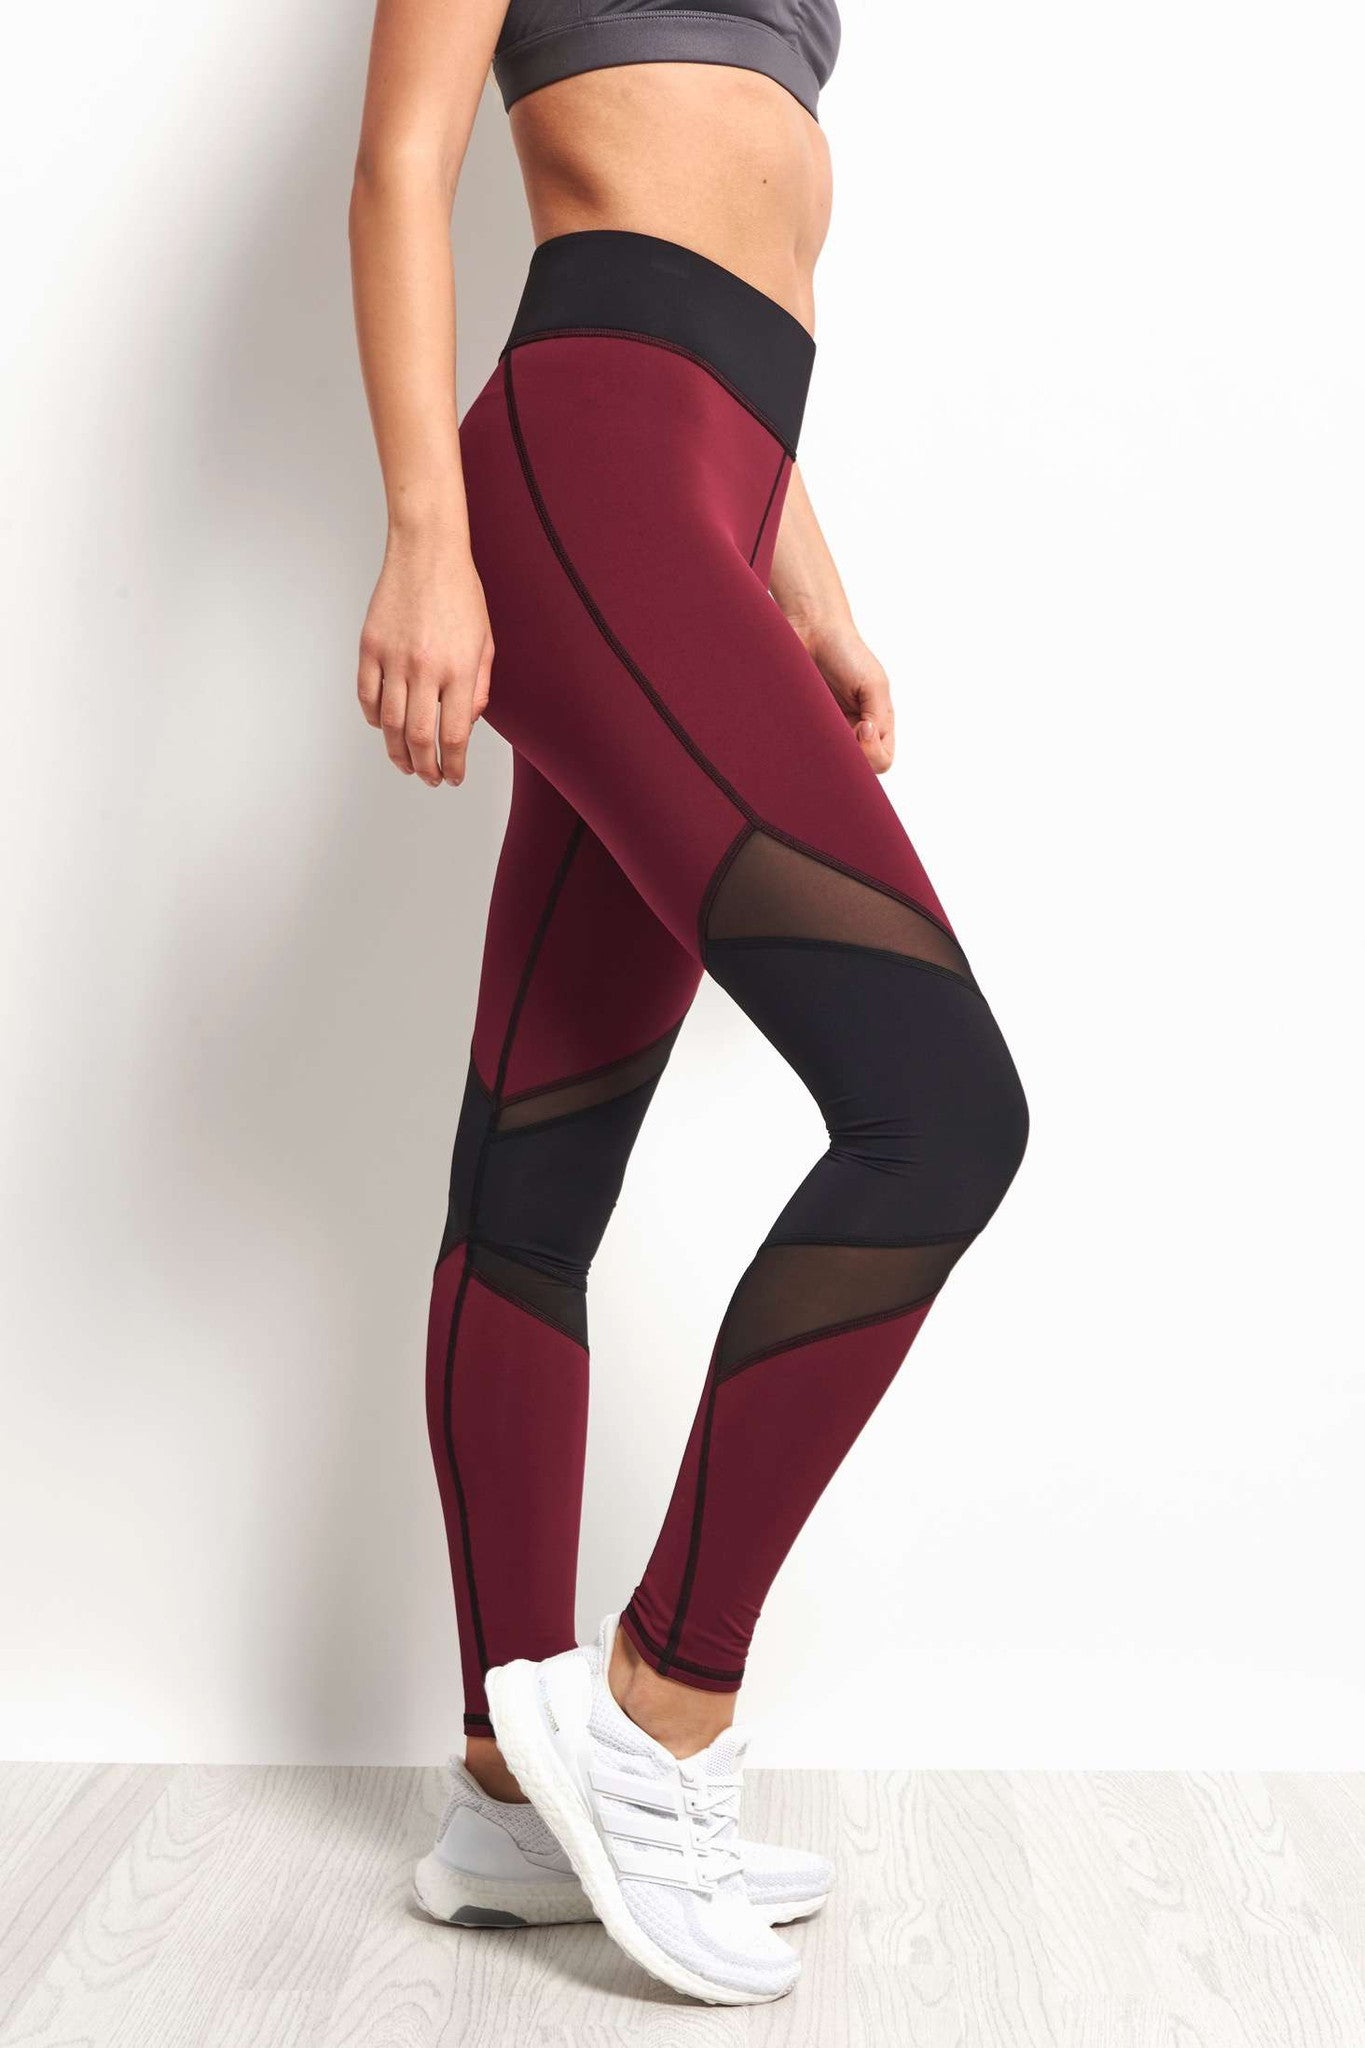 Michi Pulsar Legging - Shiraz image 1 - The Sports Edit